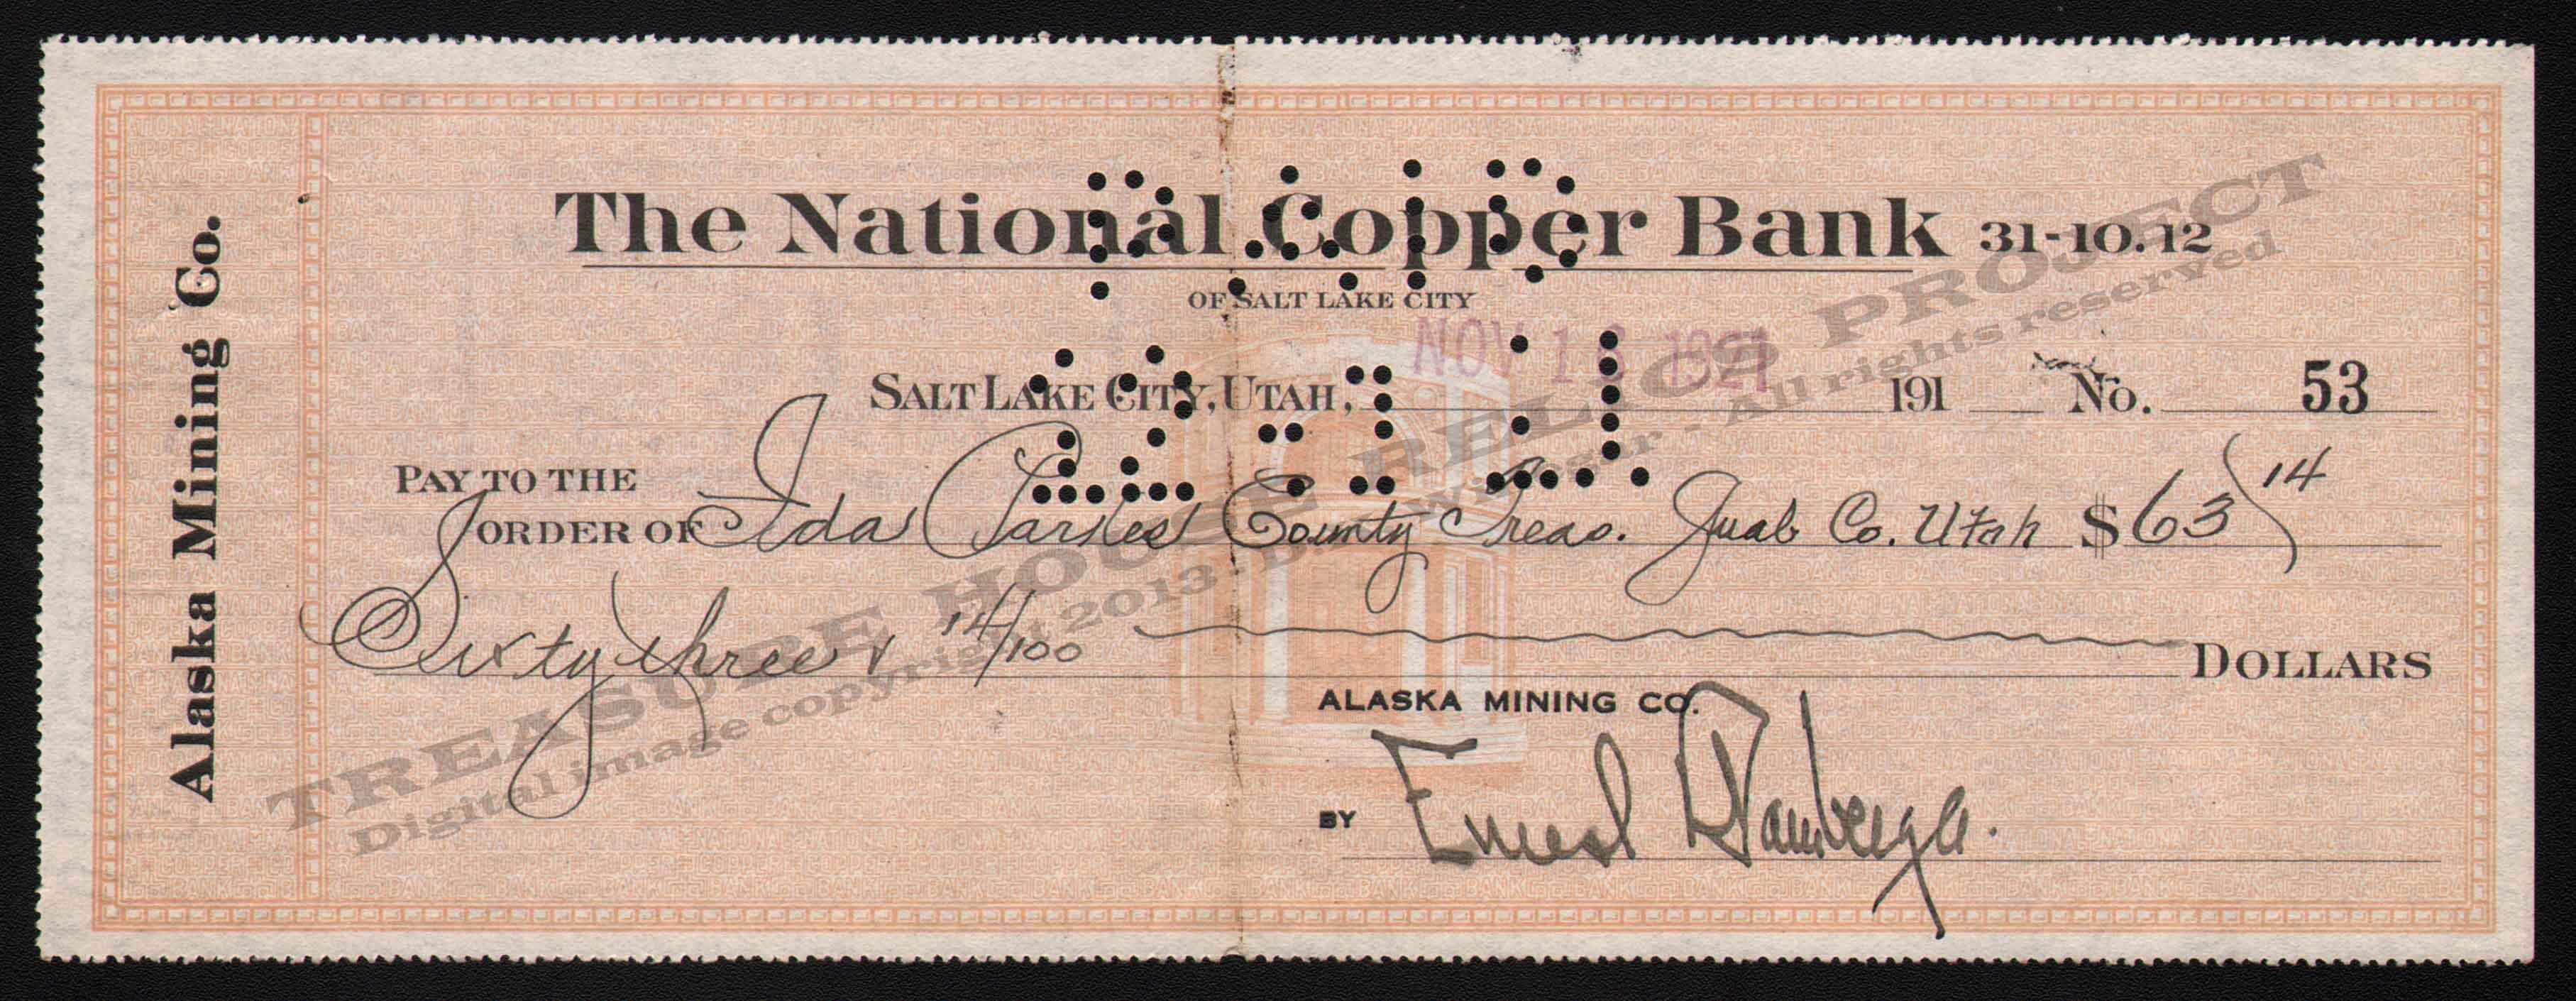 LETTERHEAD/CHECK_INTERNATIONAL_EXPLORATION_CO_SLC_28_10_8_1915_BAM_31_400_CROP_EMBOSS.jpg